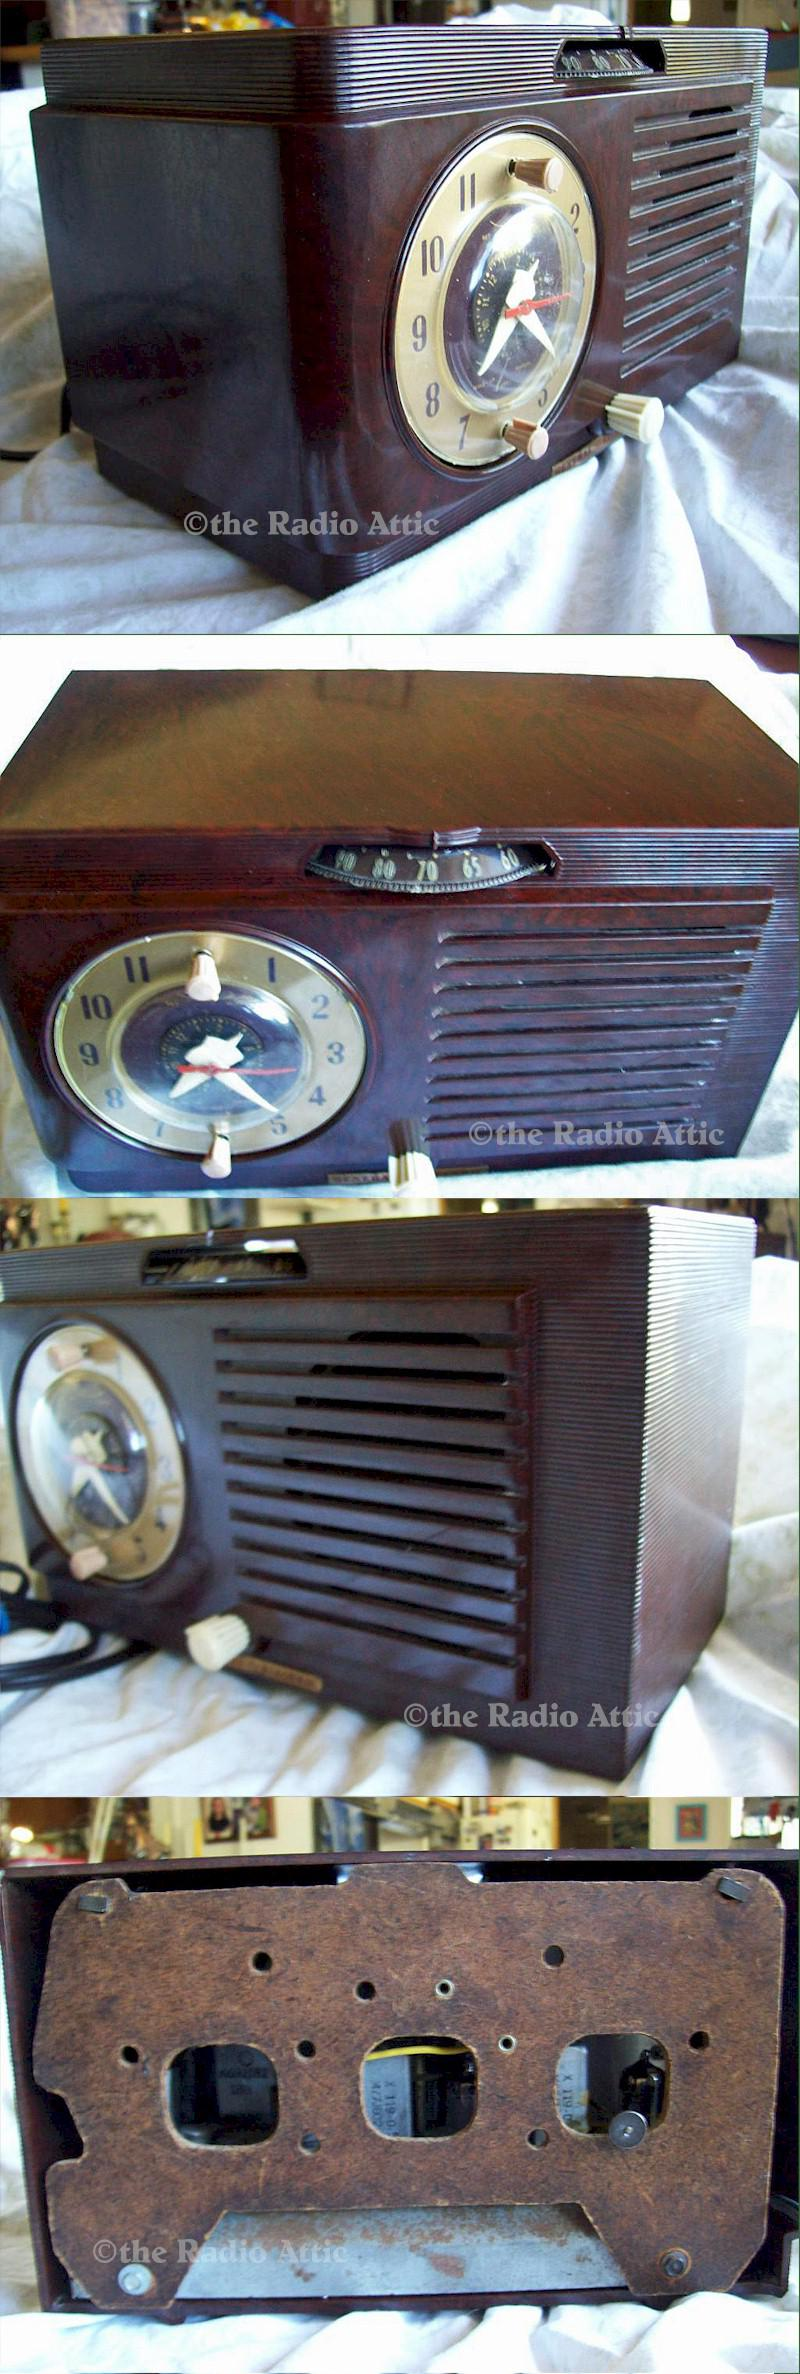 General Electric 514 Clock Radio (1953)